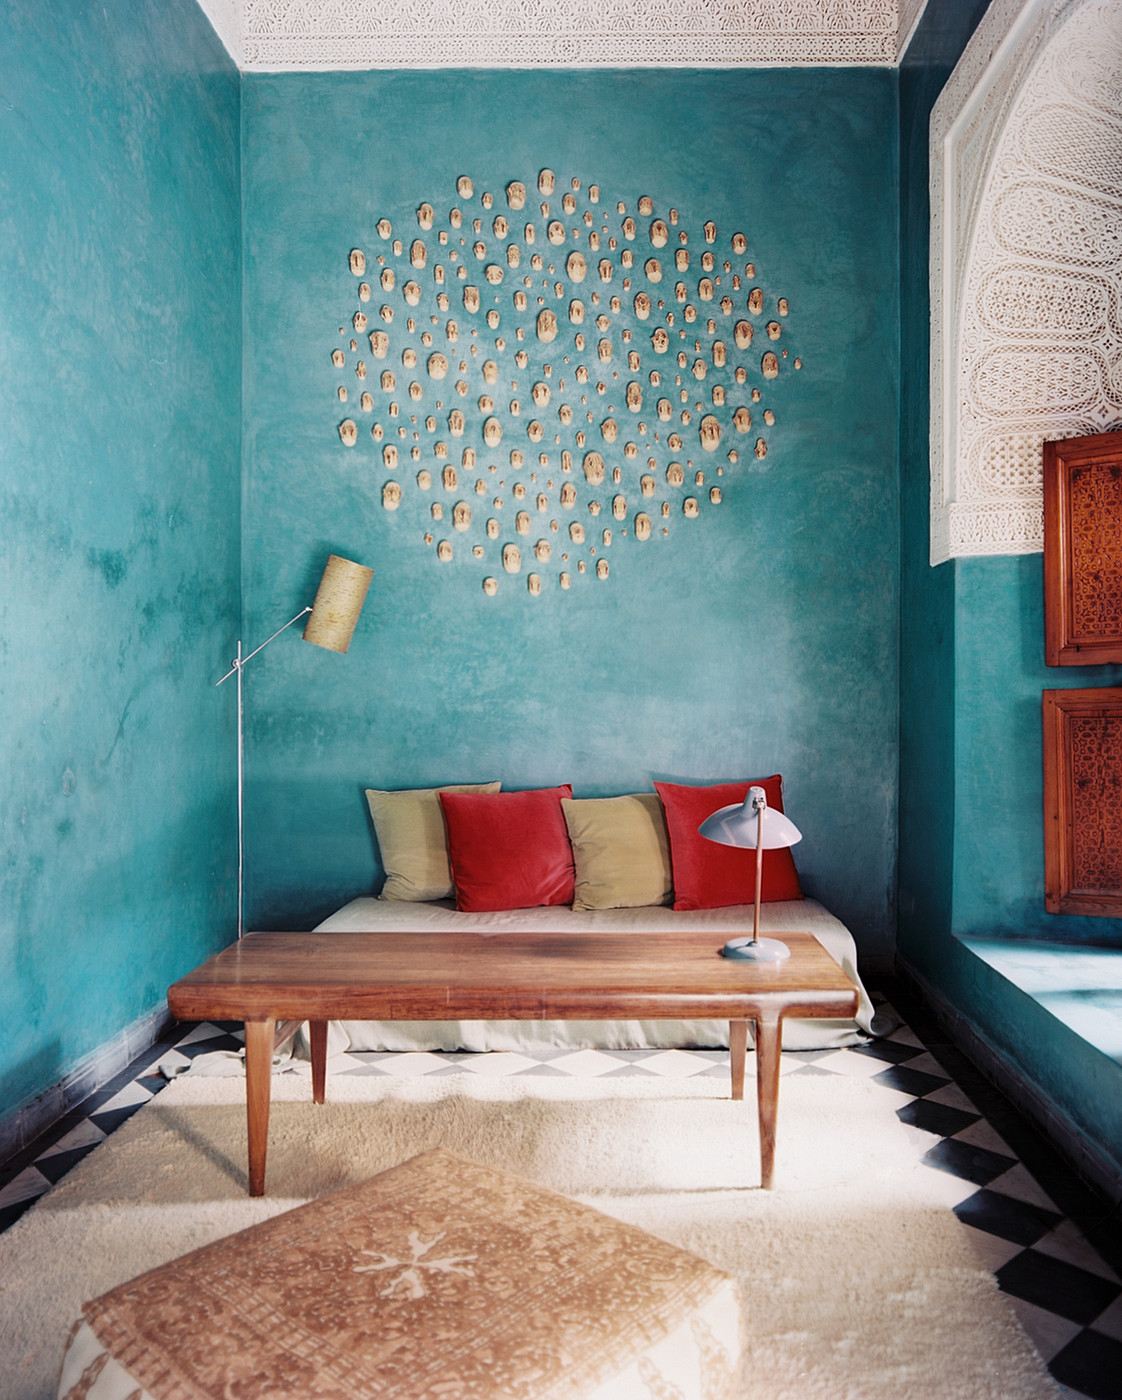 Living room color photos 6 of 18 for Objet deco bleu turquoise